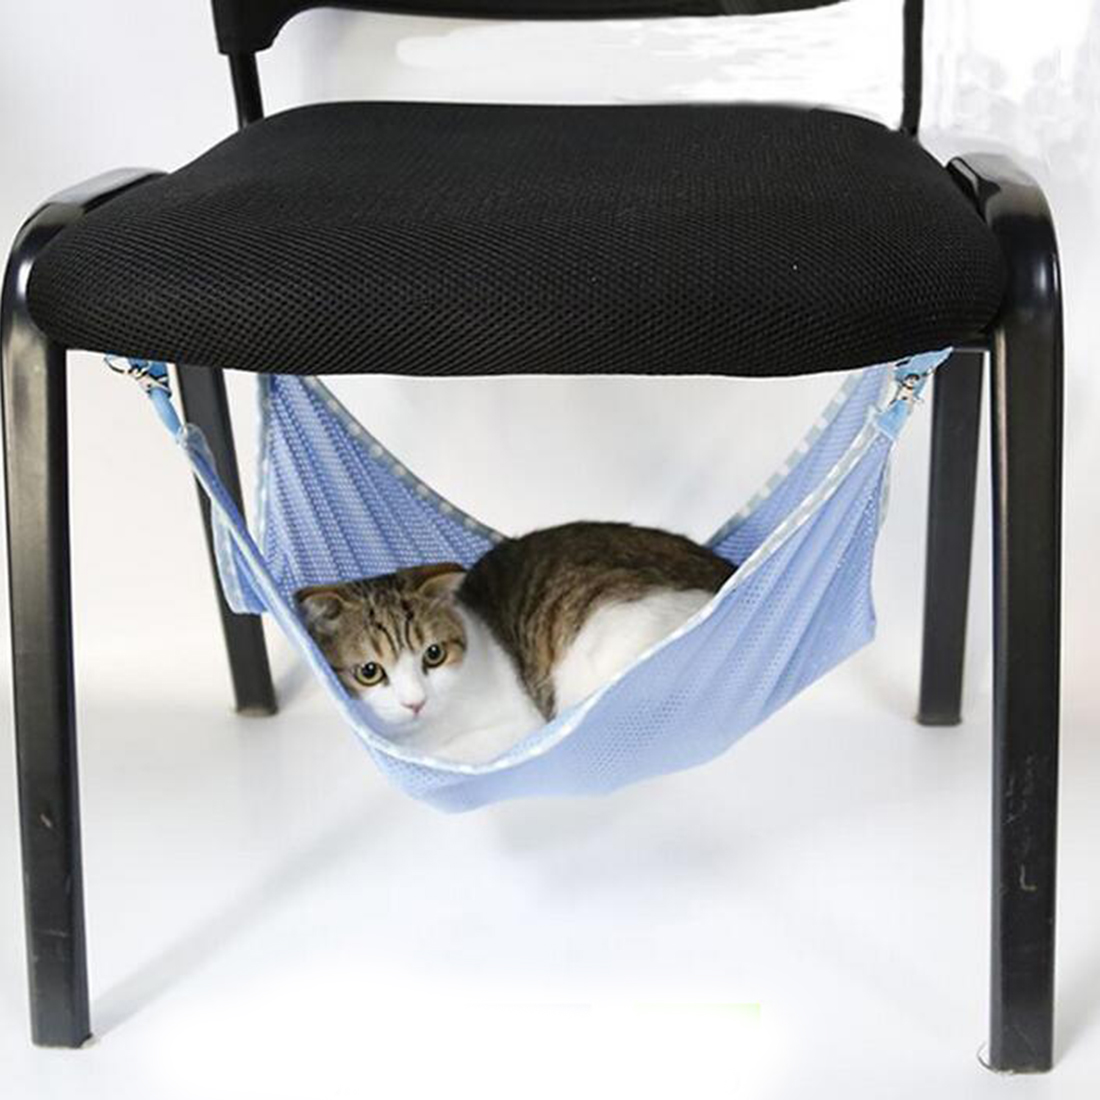 Pet Products Cat Supplies Useful Cute Cats Summer Home Hammock Cataccessorie Portable Cats Pets Breathable Mesh Hammock Multifunction Cats Beds 3 Colors Luxuriant In Design